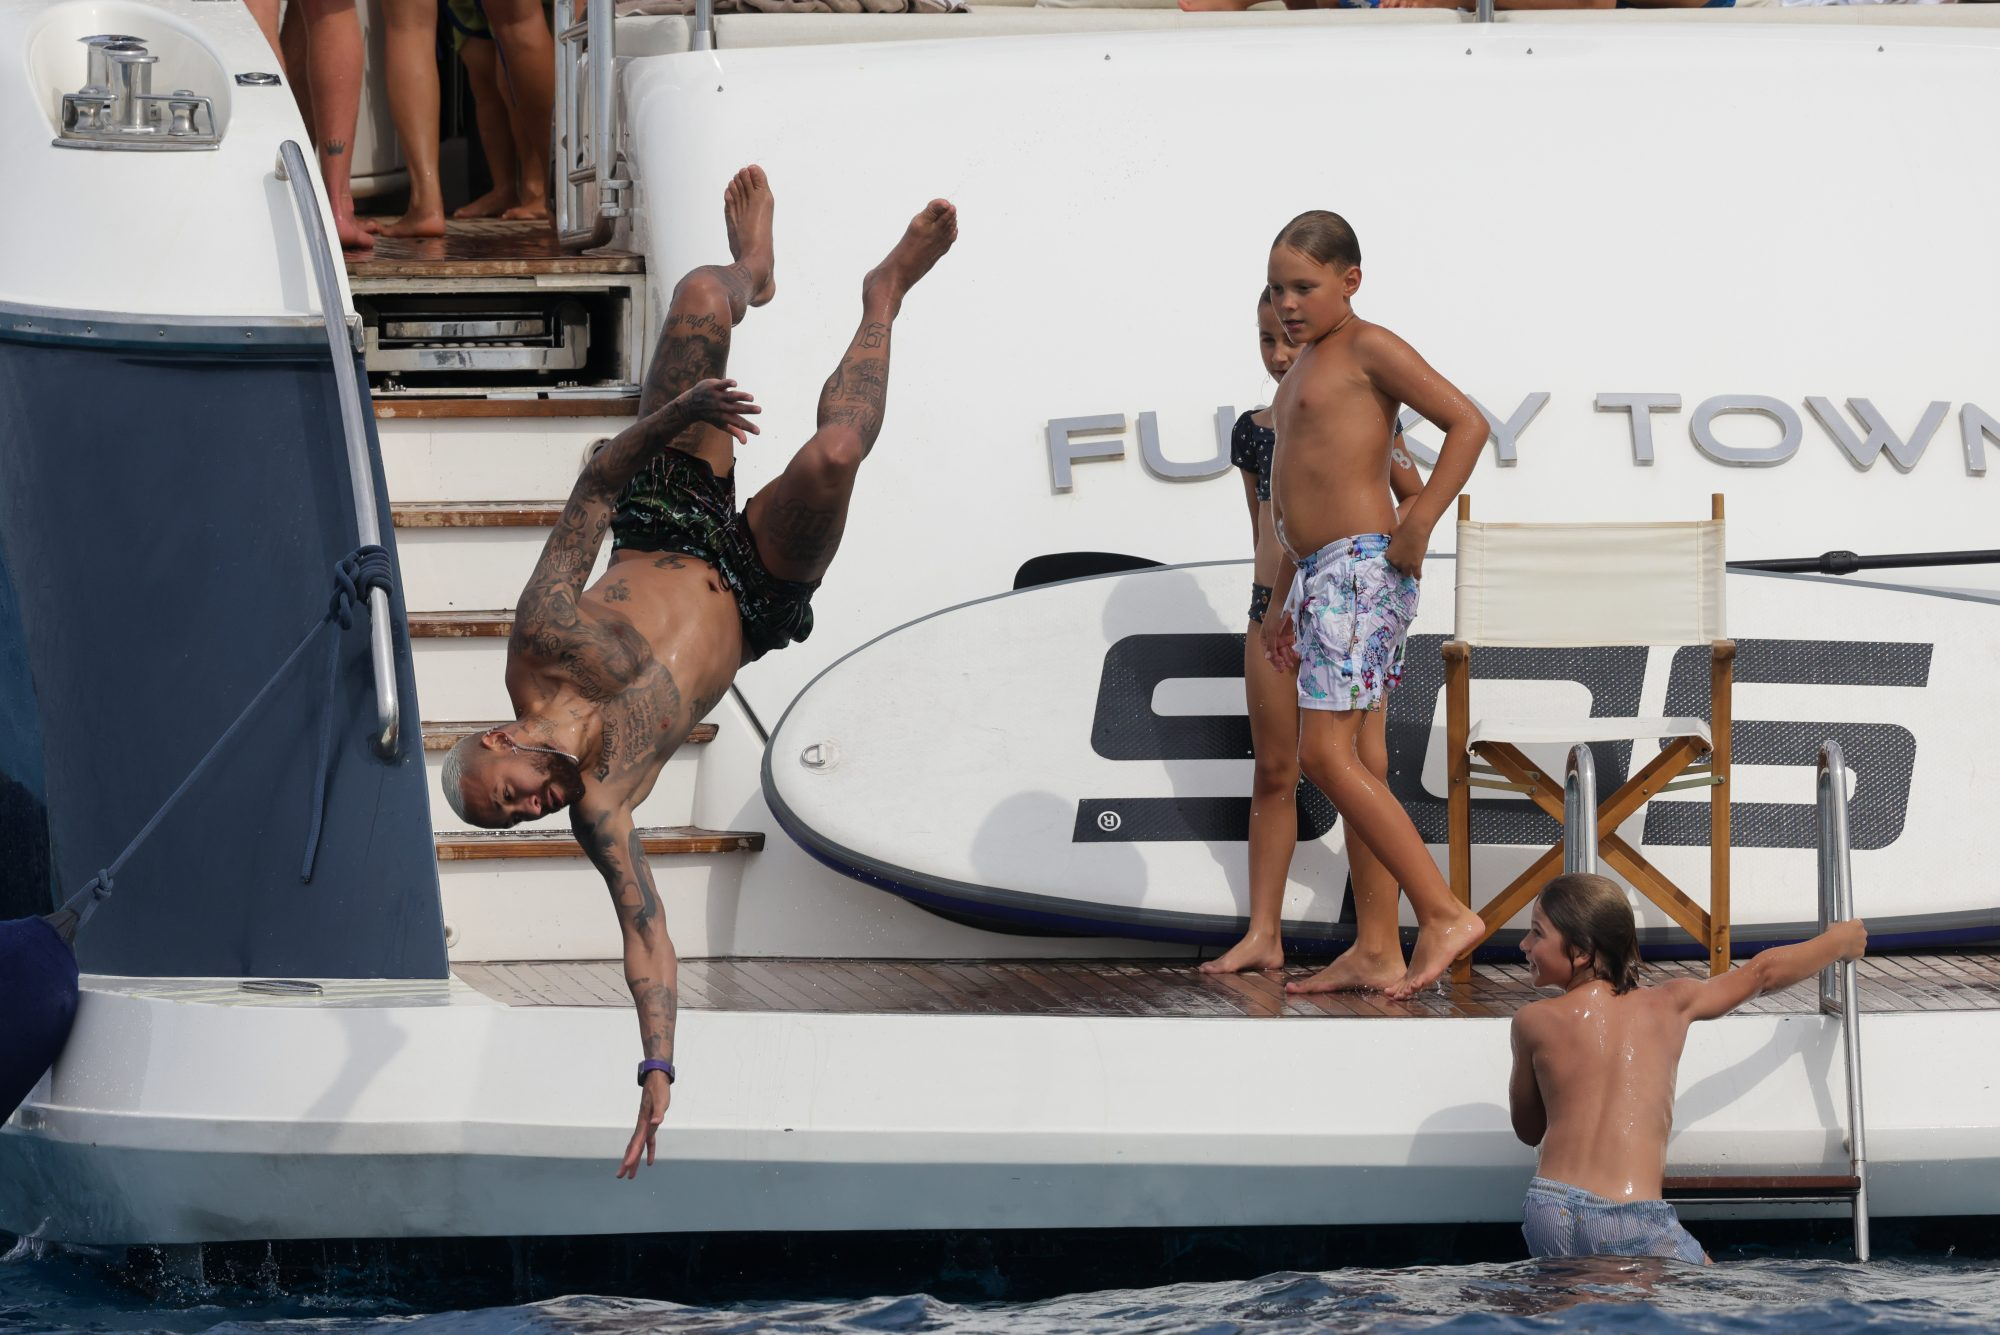 Neymar Enjoys a Day on his Luxury Yacht with Friends in Formentera